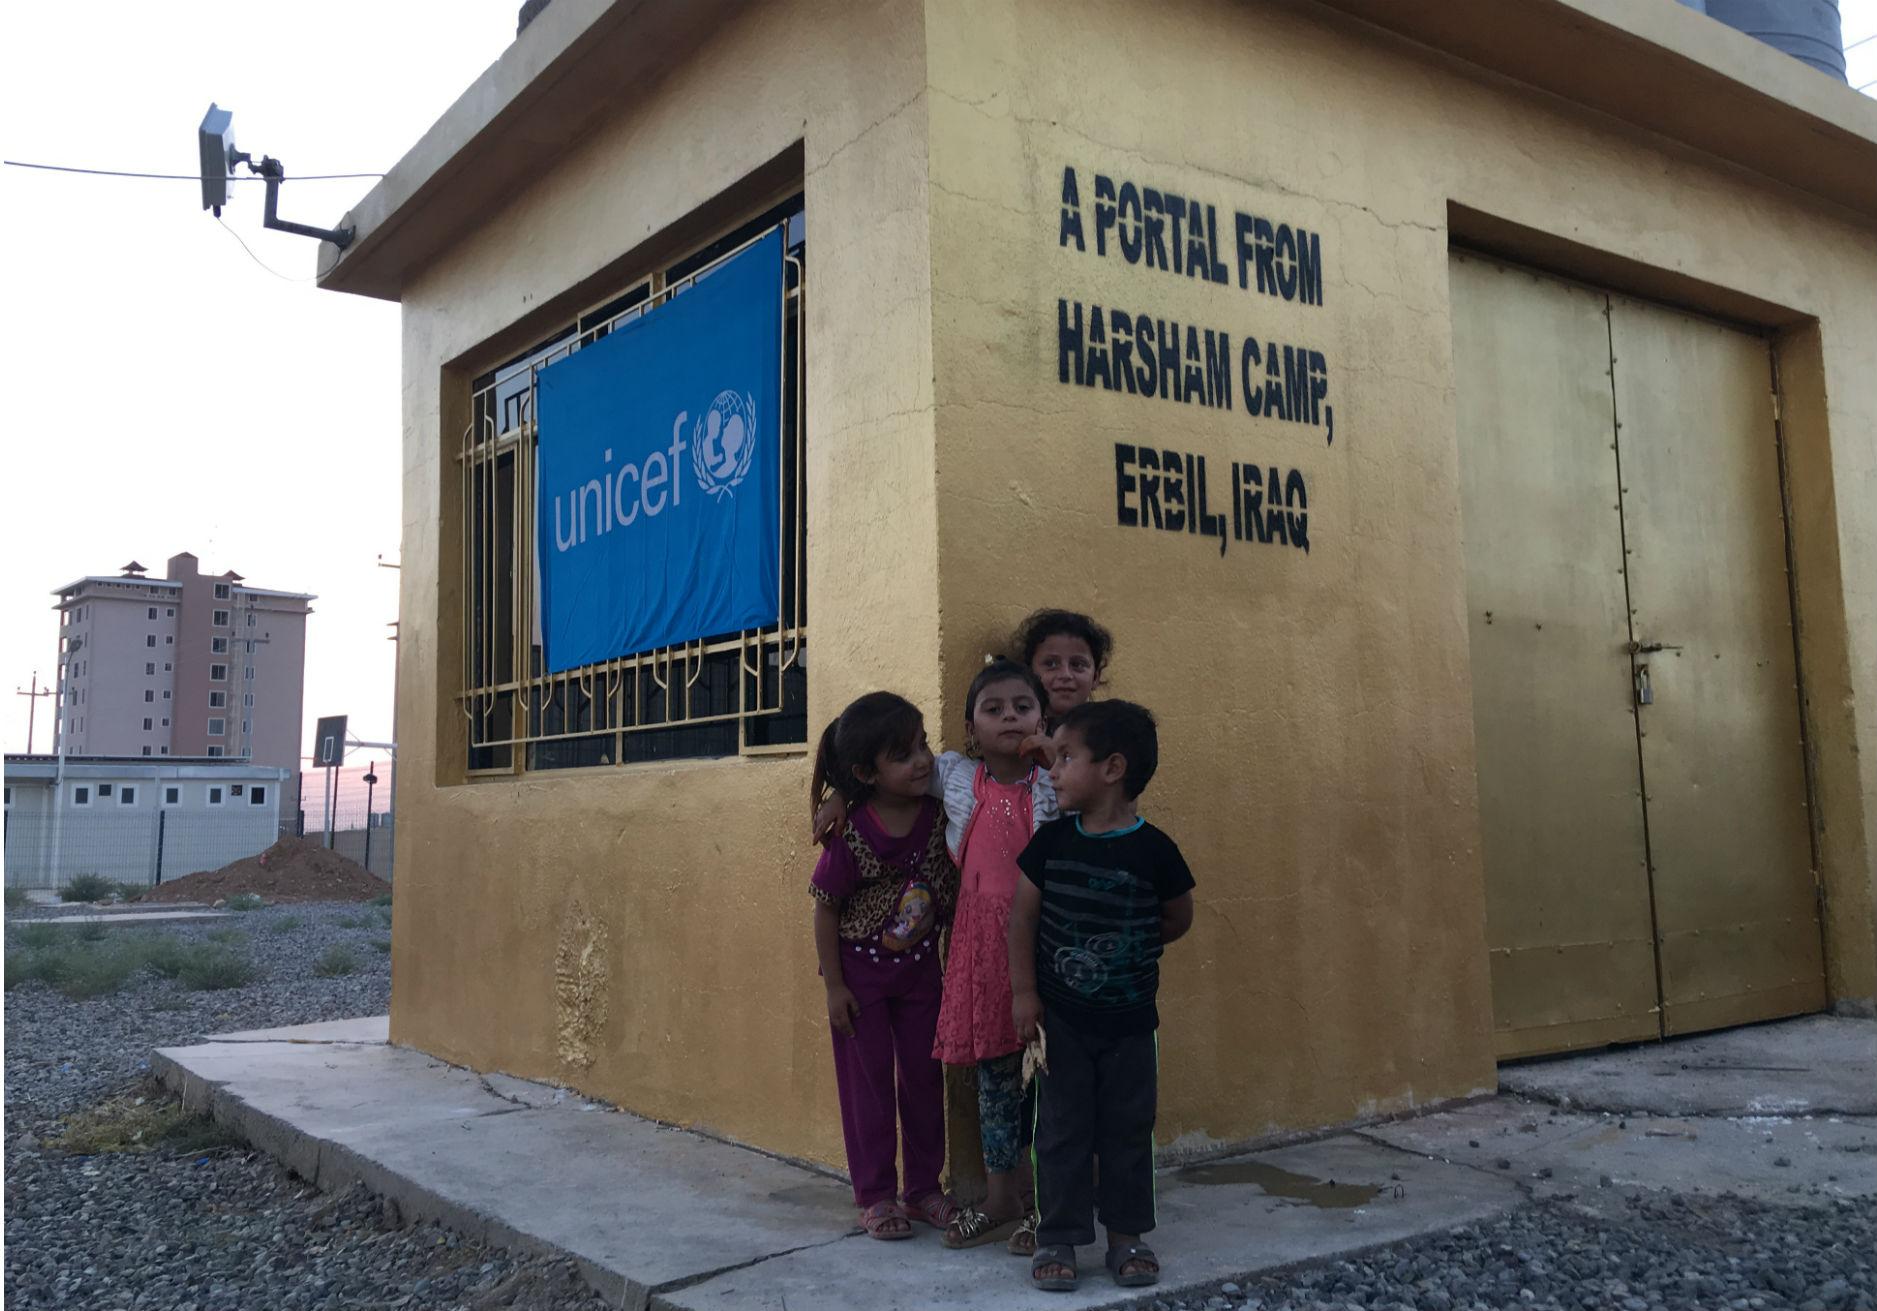 A group of children outside a building